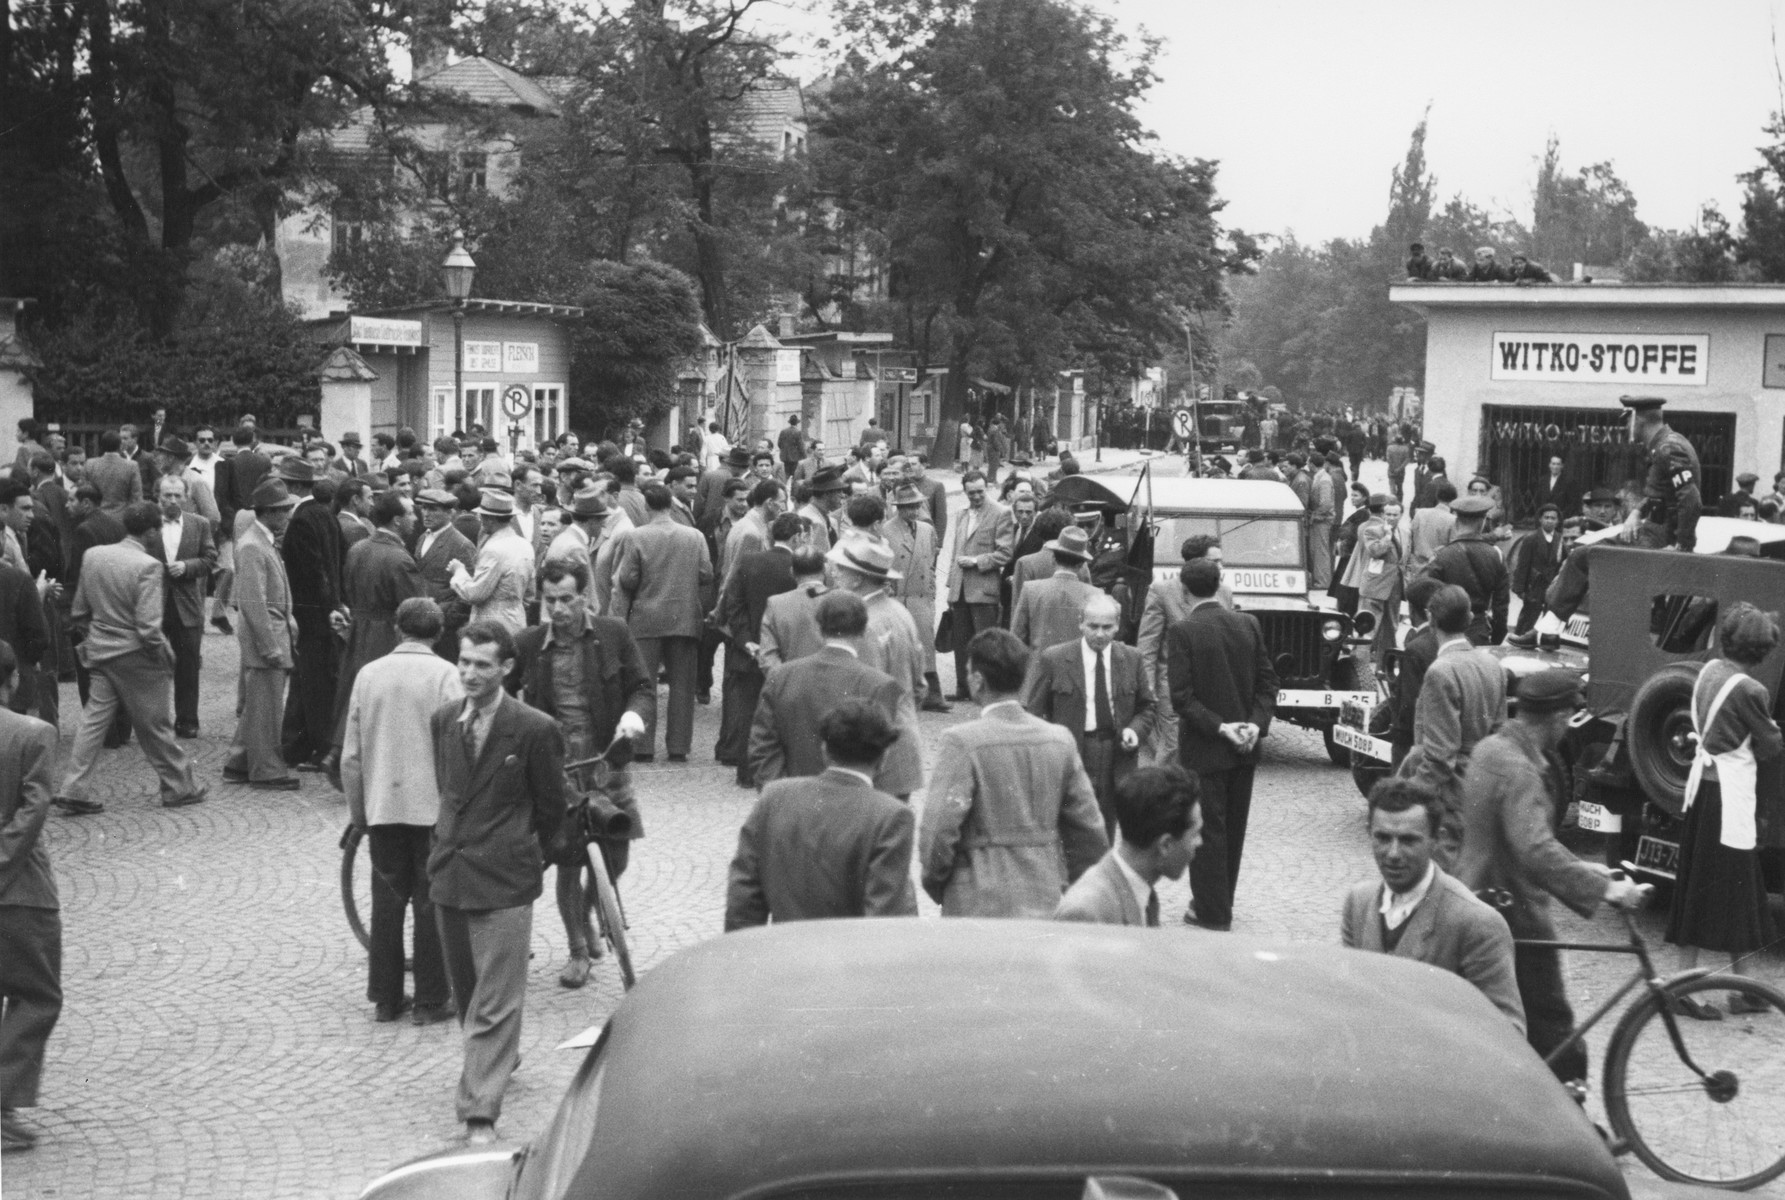 Over 1000 Jews demonstrate against an anti-Semitic outbreak of violence in Munich.    Fighting broke out after German police tried to stop the demonstration.  The situation calmed down only after the intervention of American soldiers.